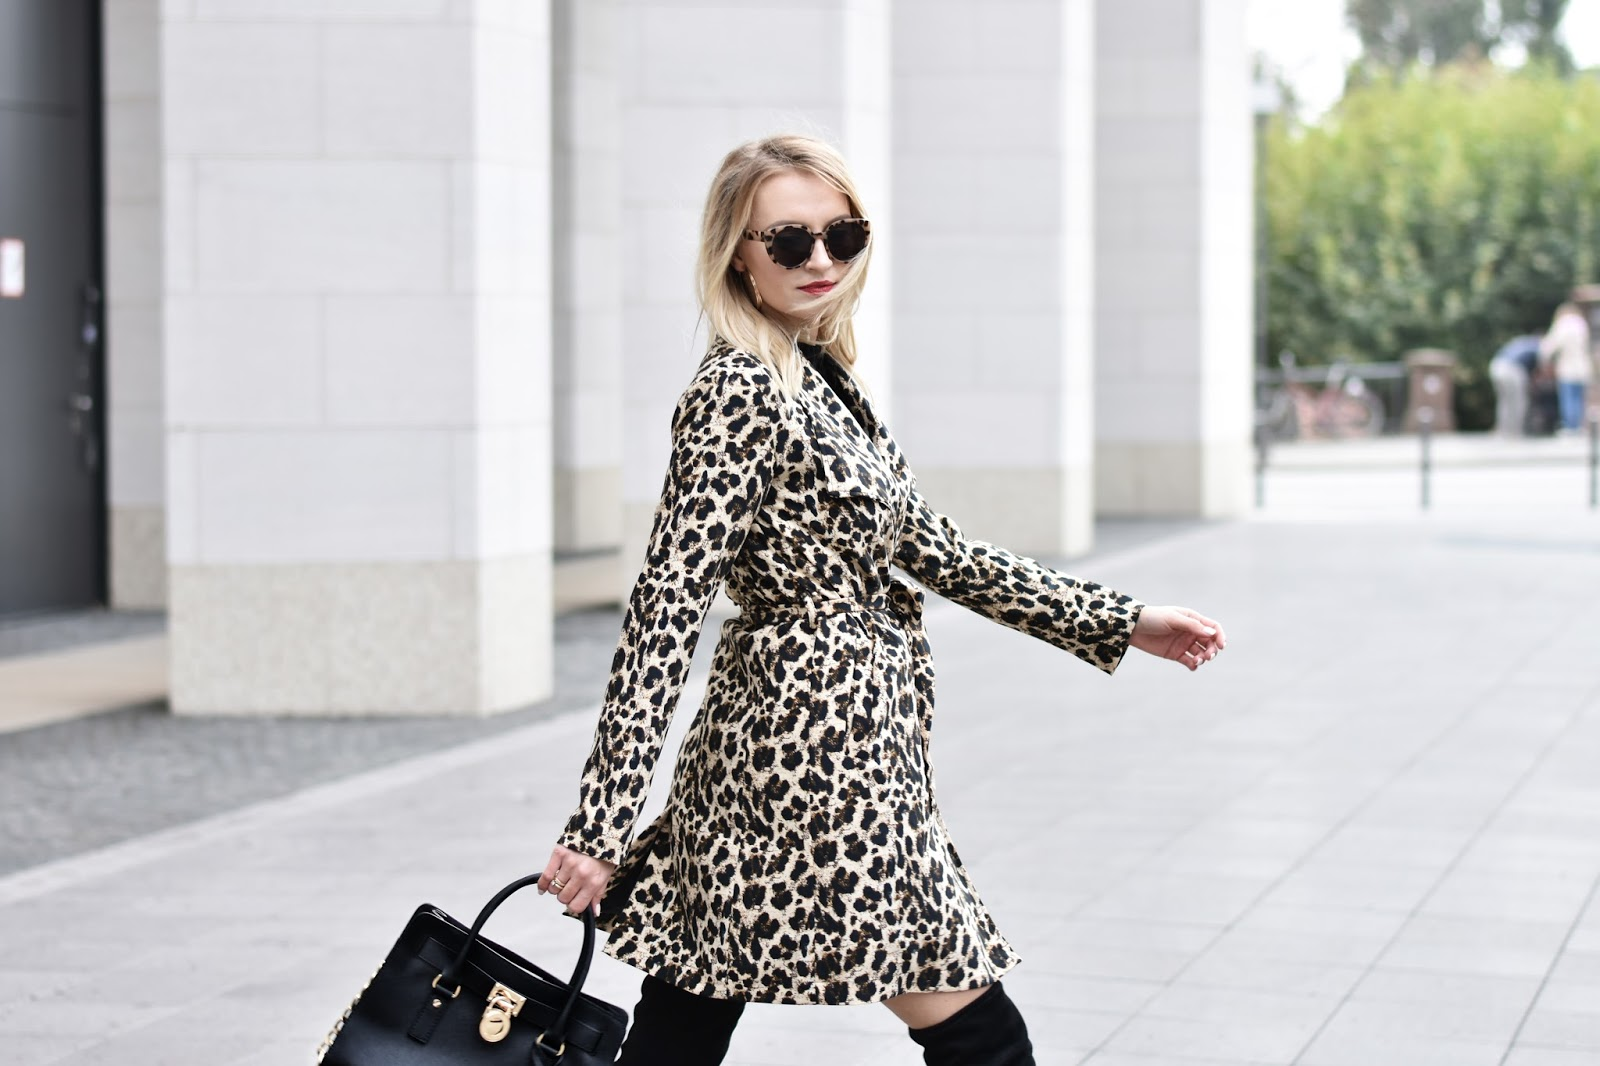 Autumn/Winter Fashion Trends 2017/2018 - LEOPARD PRINT